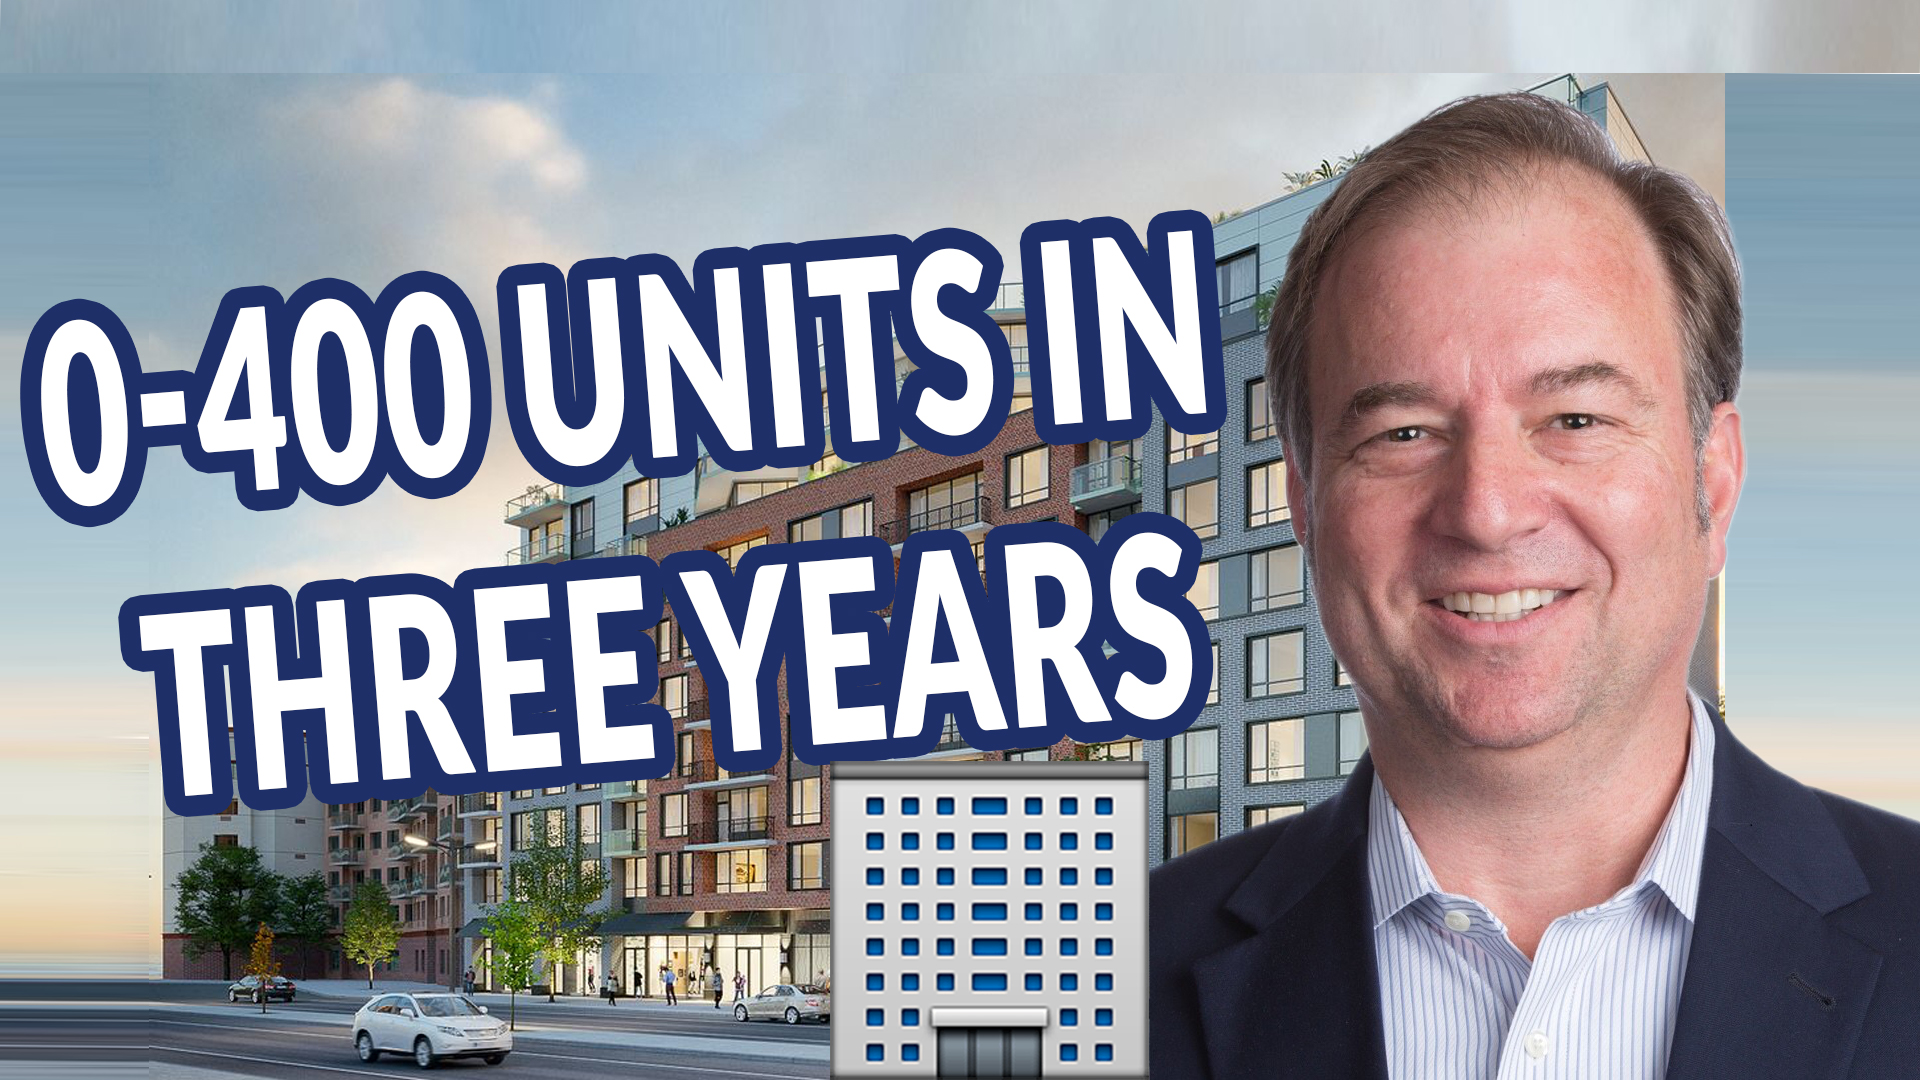 Multi-Family Investment: From 0-400 Units in 3 Years!